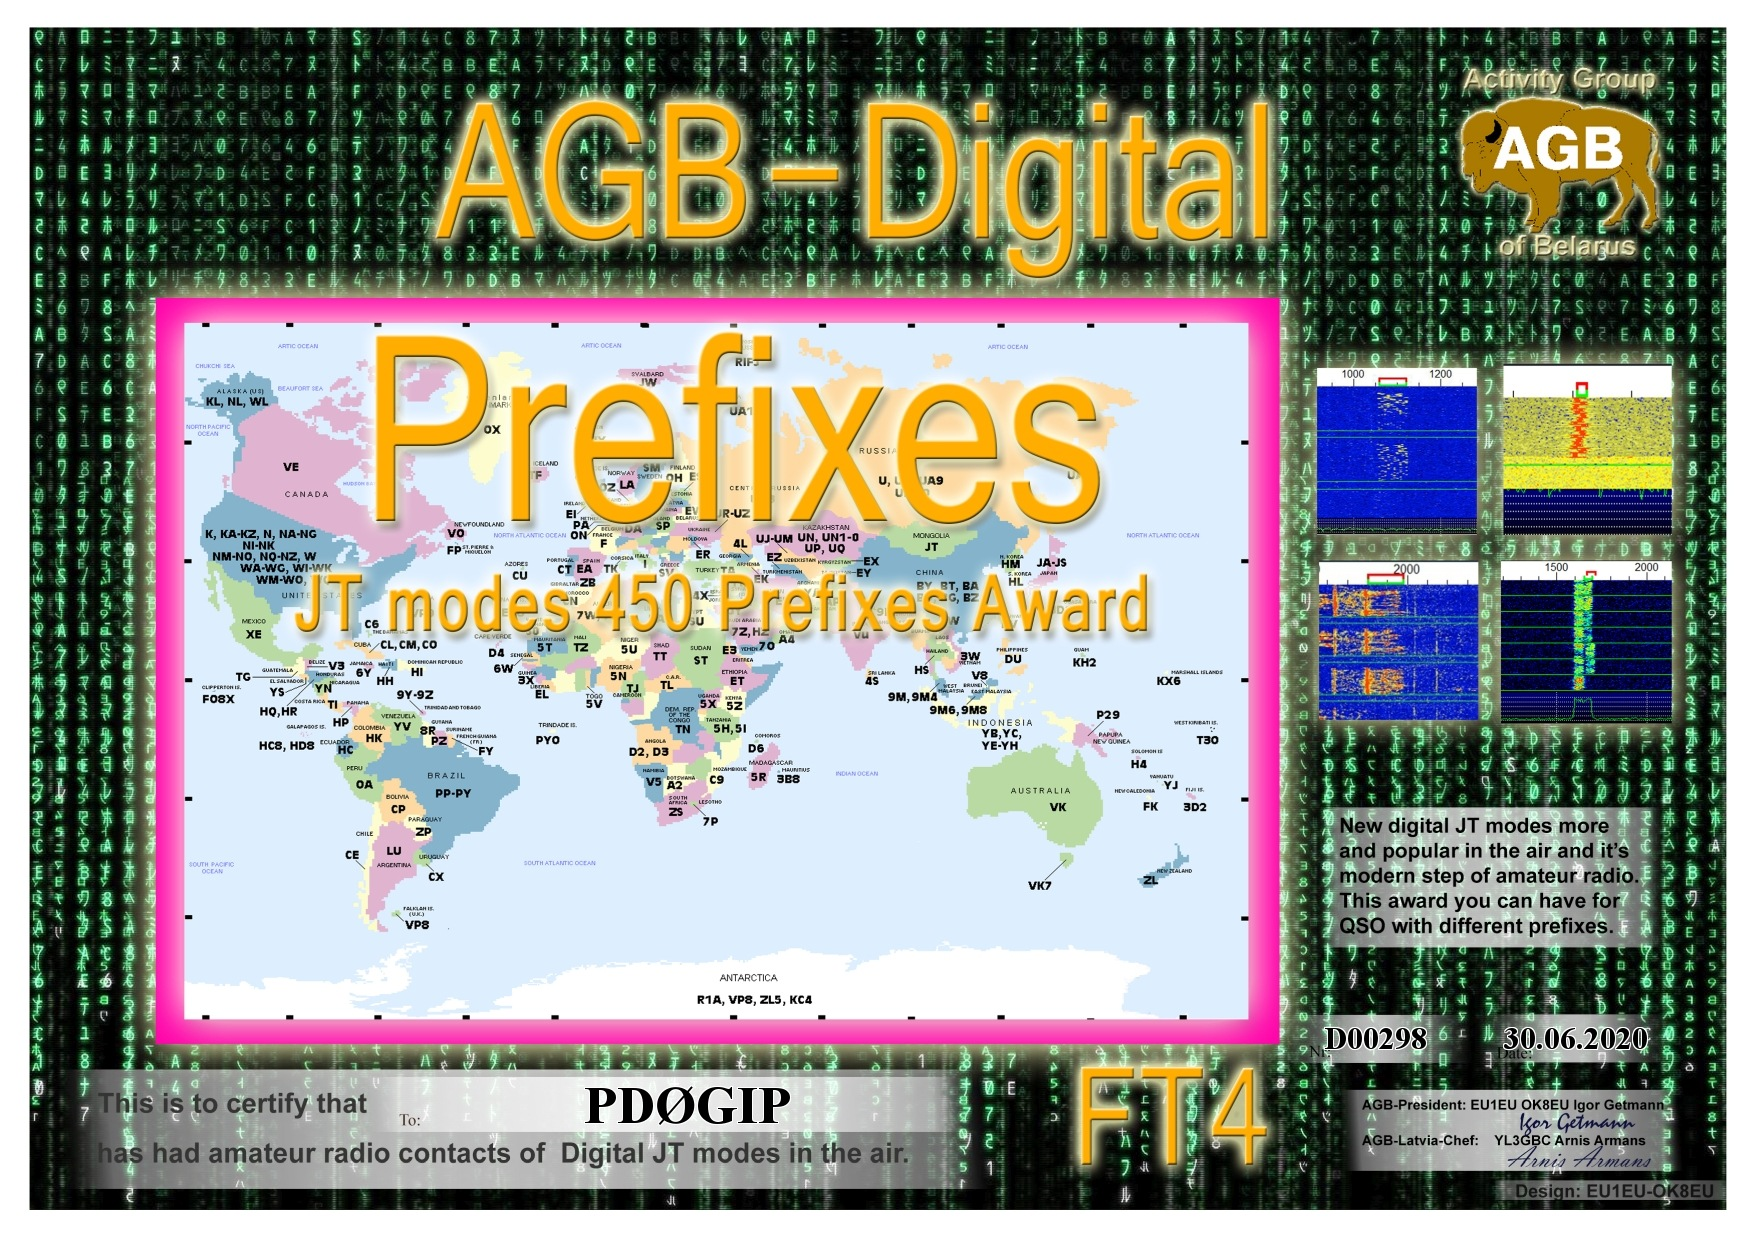 PD0GIP PREFIXES FT4 450 AGB